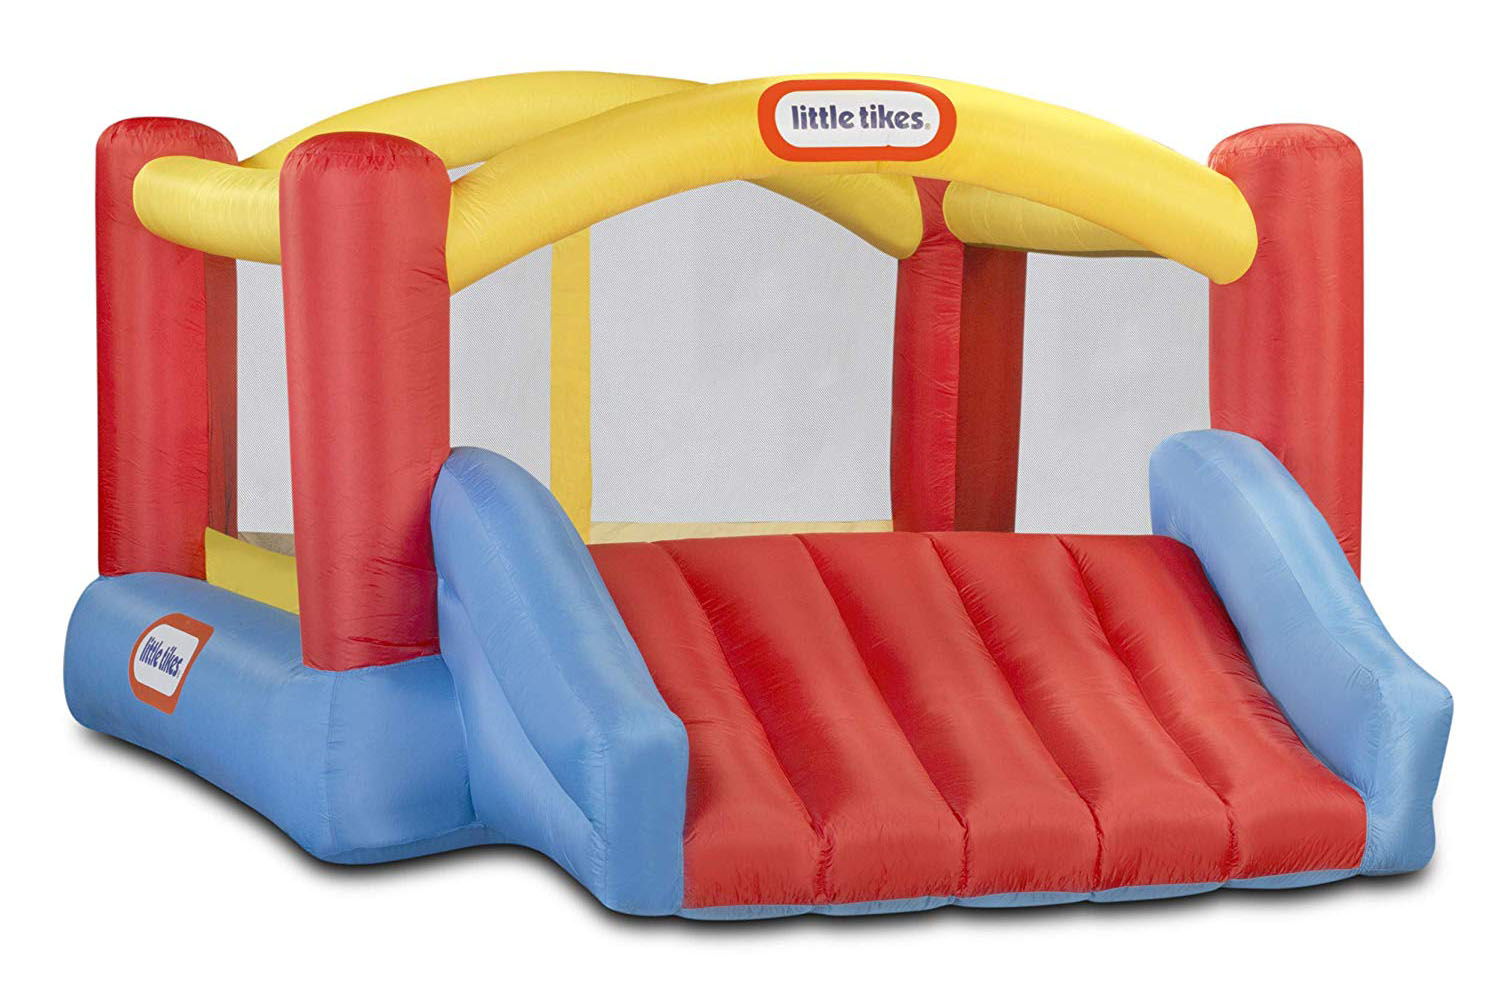 Little Tikes Inflatable Jump 'n Slide Bounce House with heavy duty blower